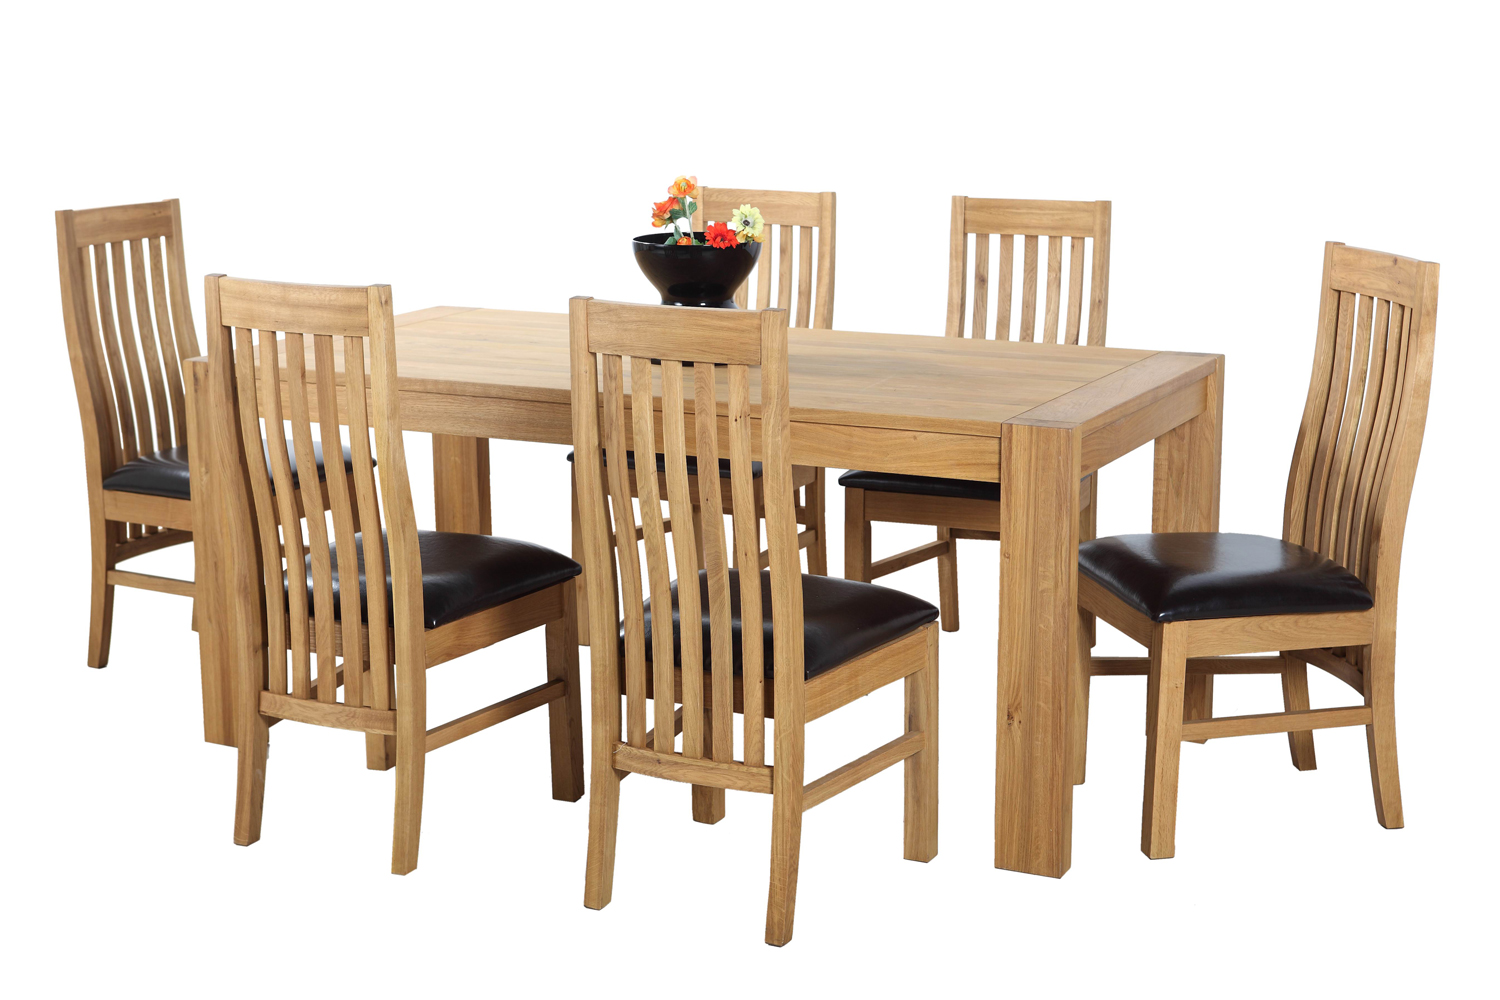 Oak Expandable Dining Table Set With Rectangle Table For Dining Room  Furniture Ideas